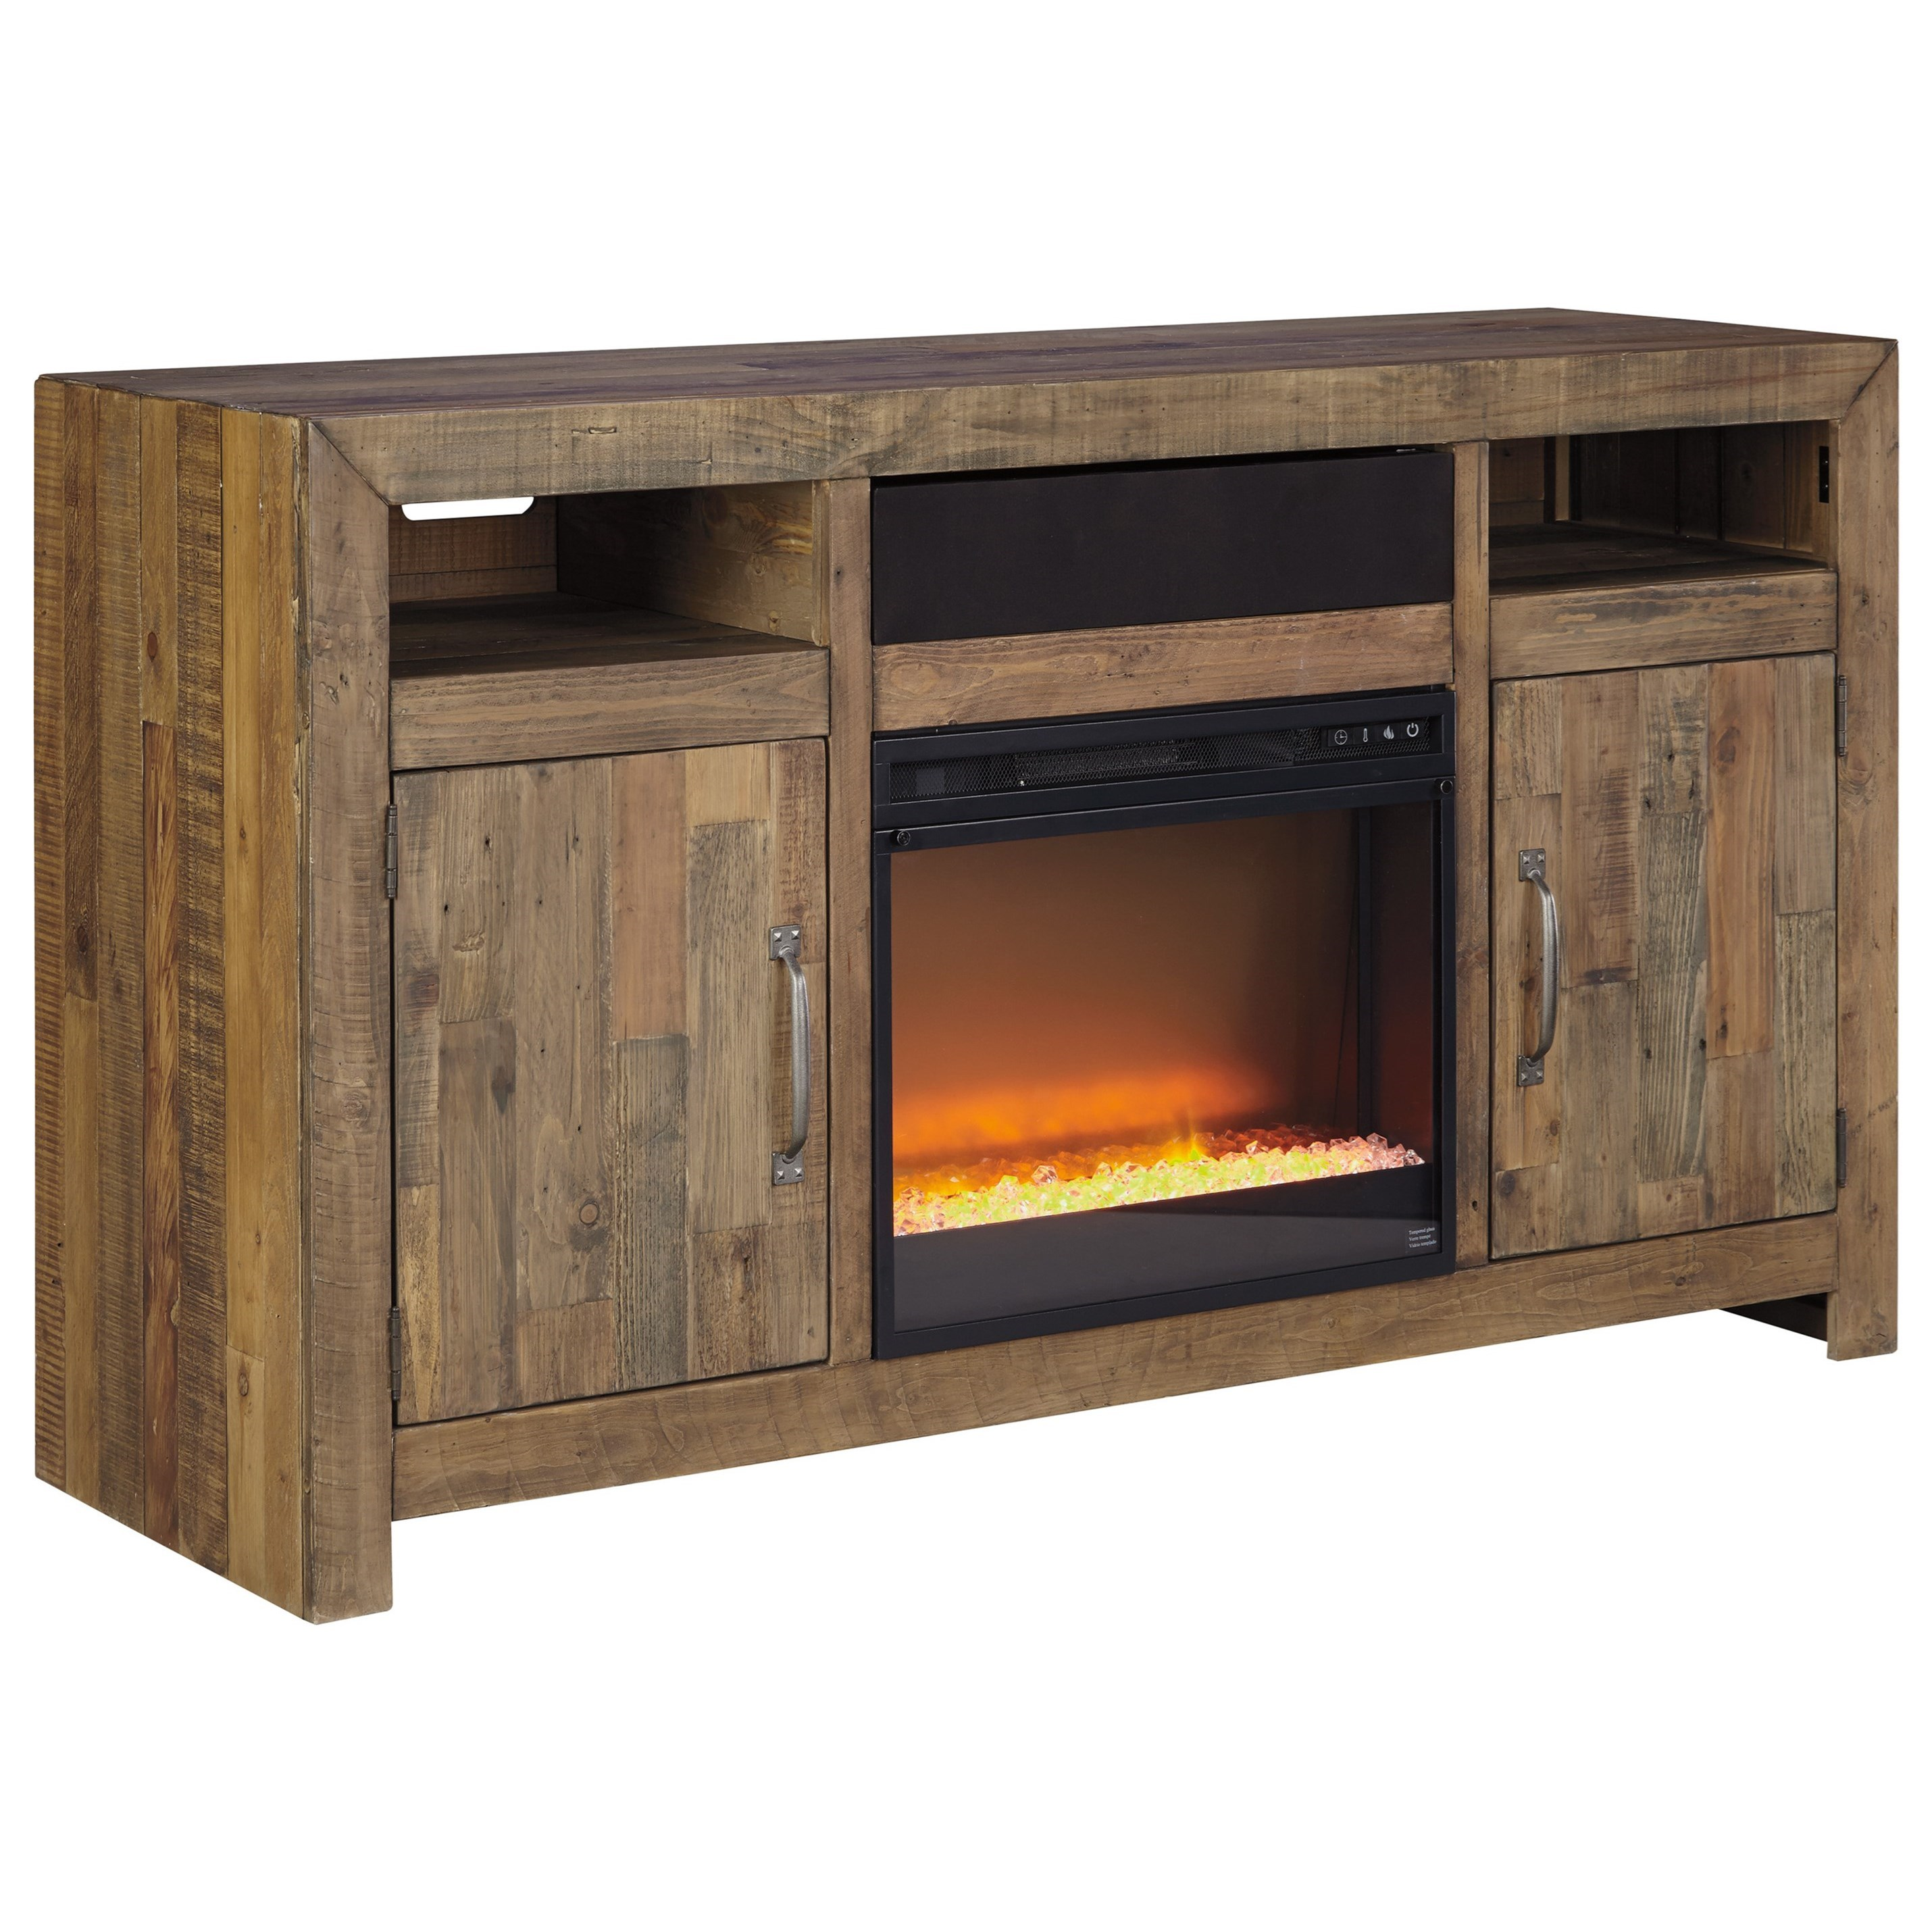 Reclaimed Pine Solid Wood Large TV Stand w/ Fireplace